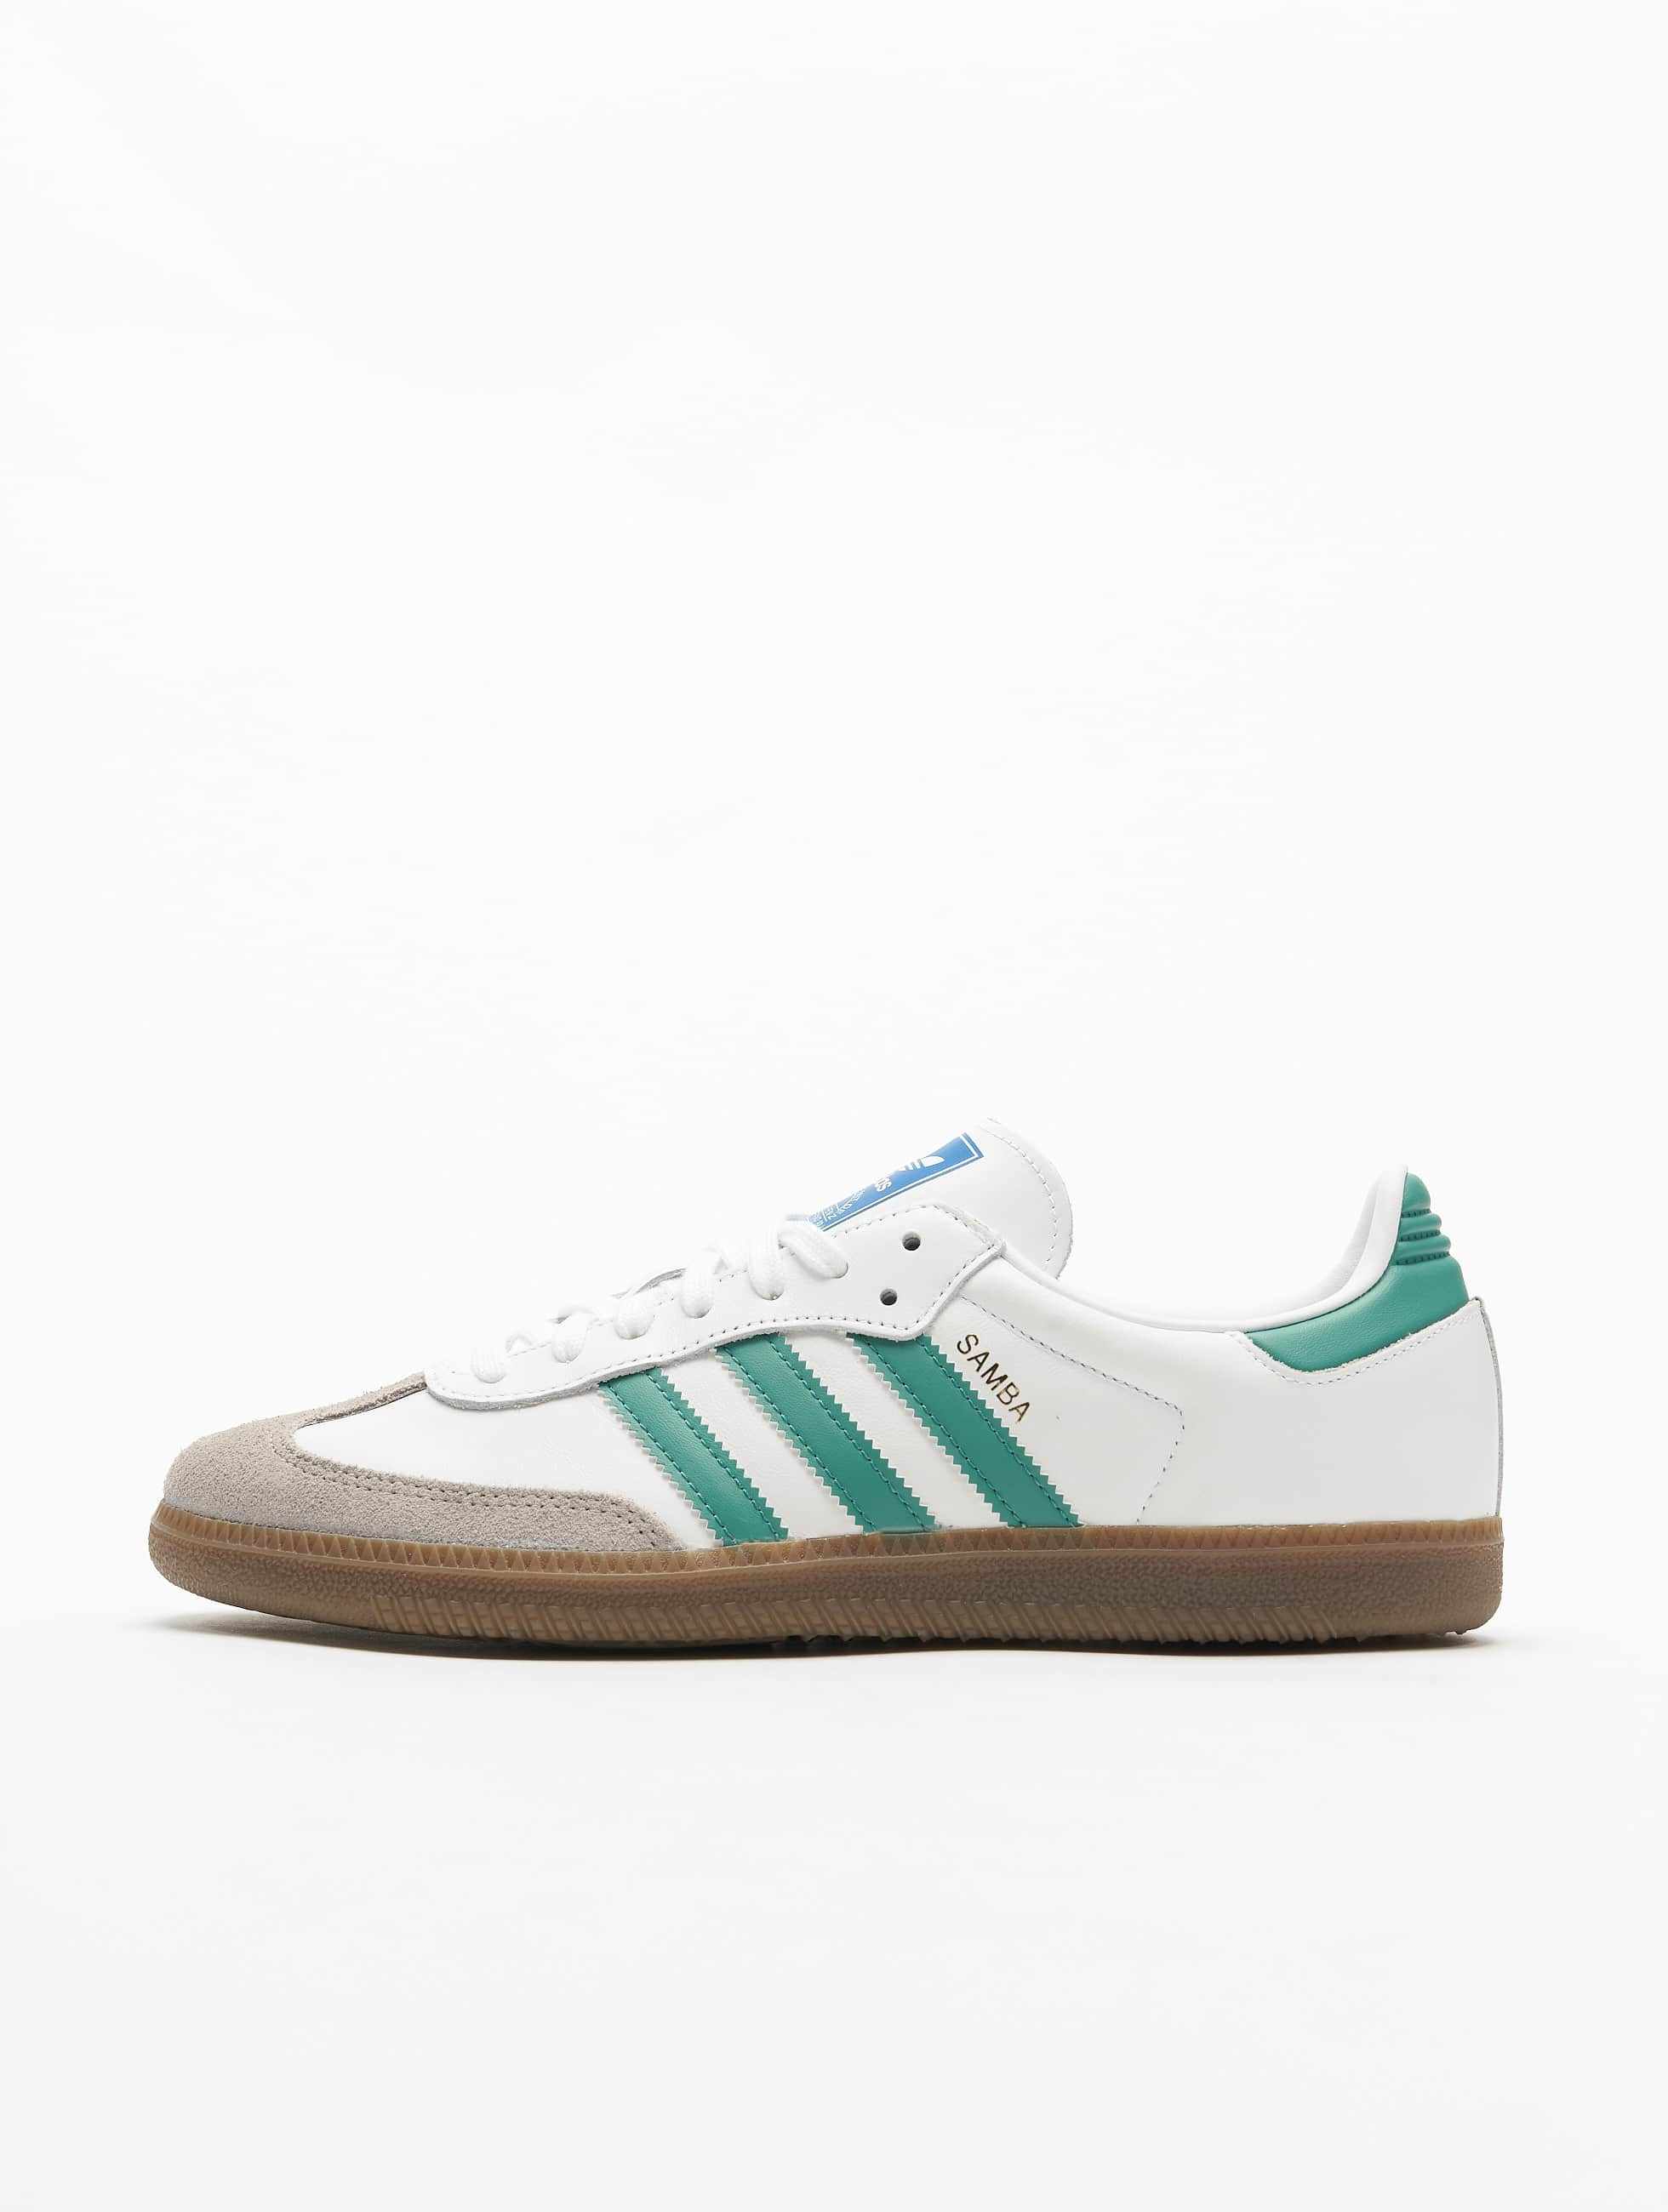 adidas Originals | Samba OG blanc Homme Baskets 721657